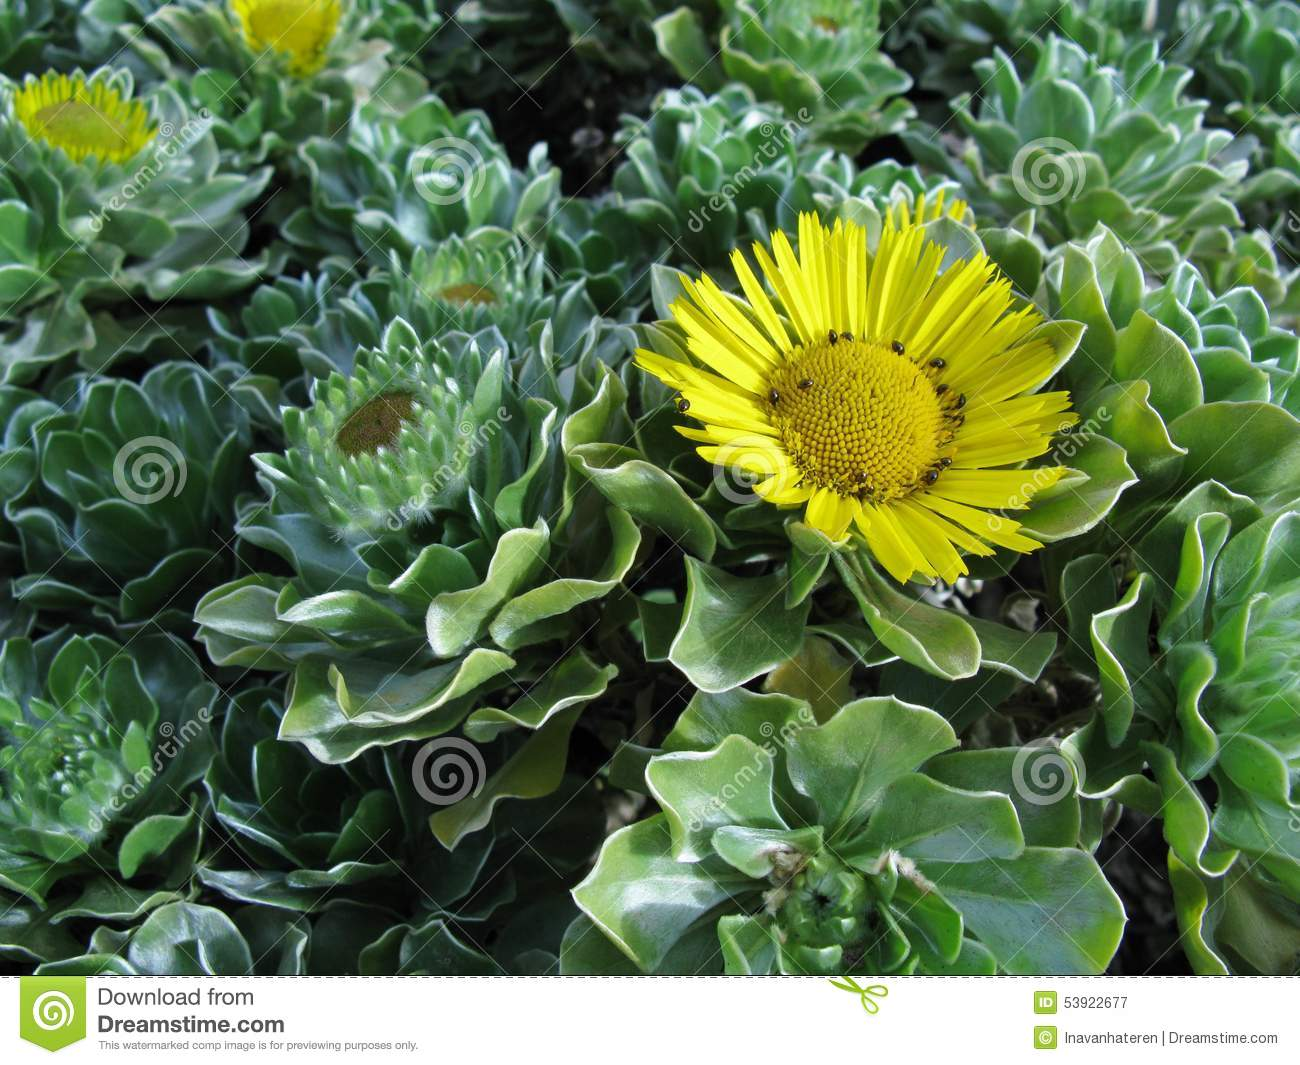 A yellow flowering evergreen bush stock image image of decorative a yellow flowering evergreen bush mightylinksfo